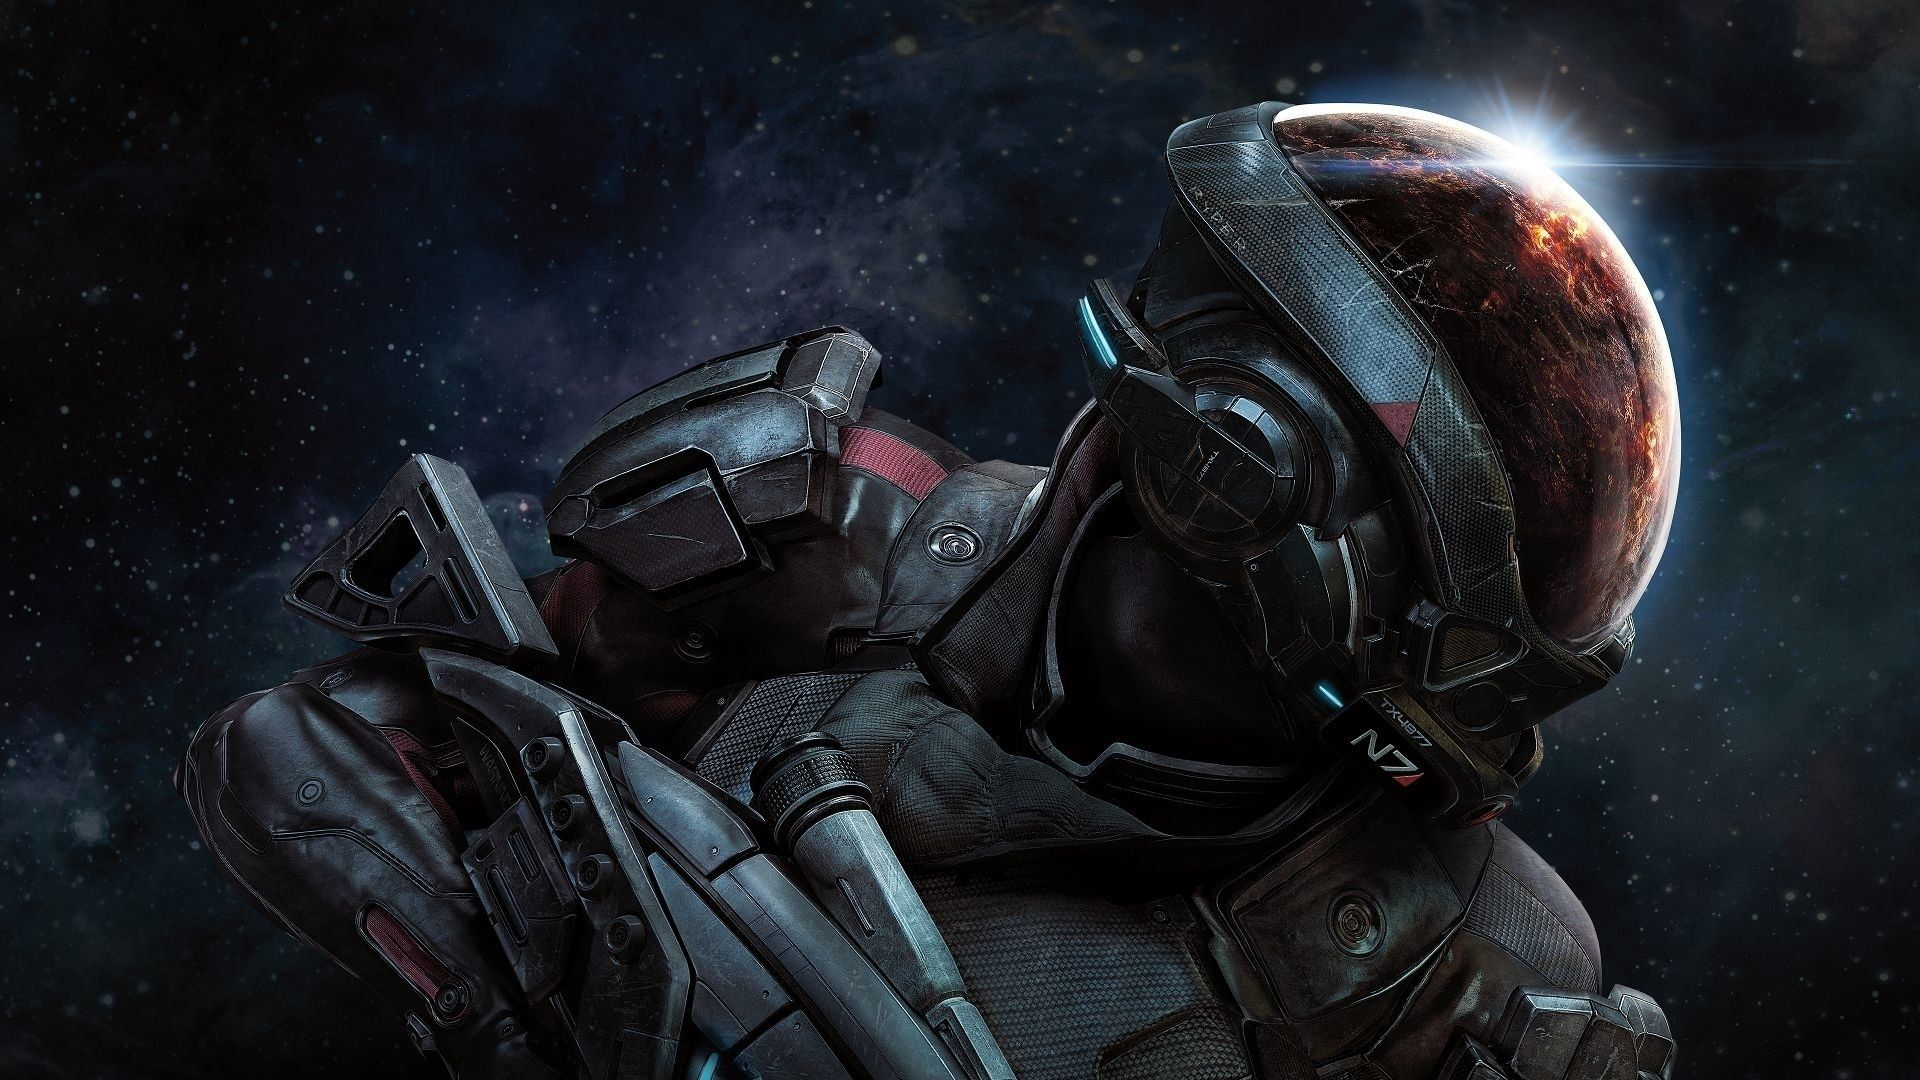 10 New Hd Mass Effect Wallpapers Full Hd 1080p For Pc Background